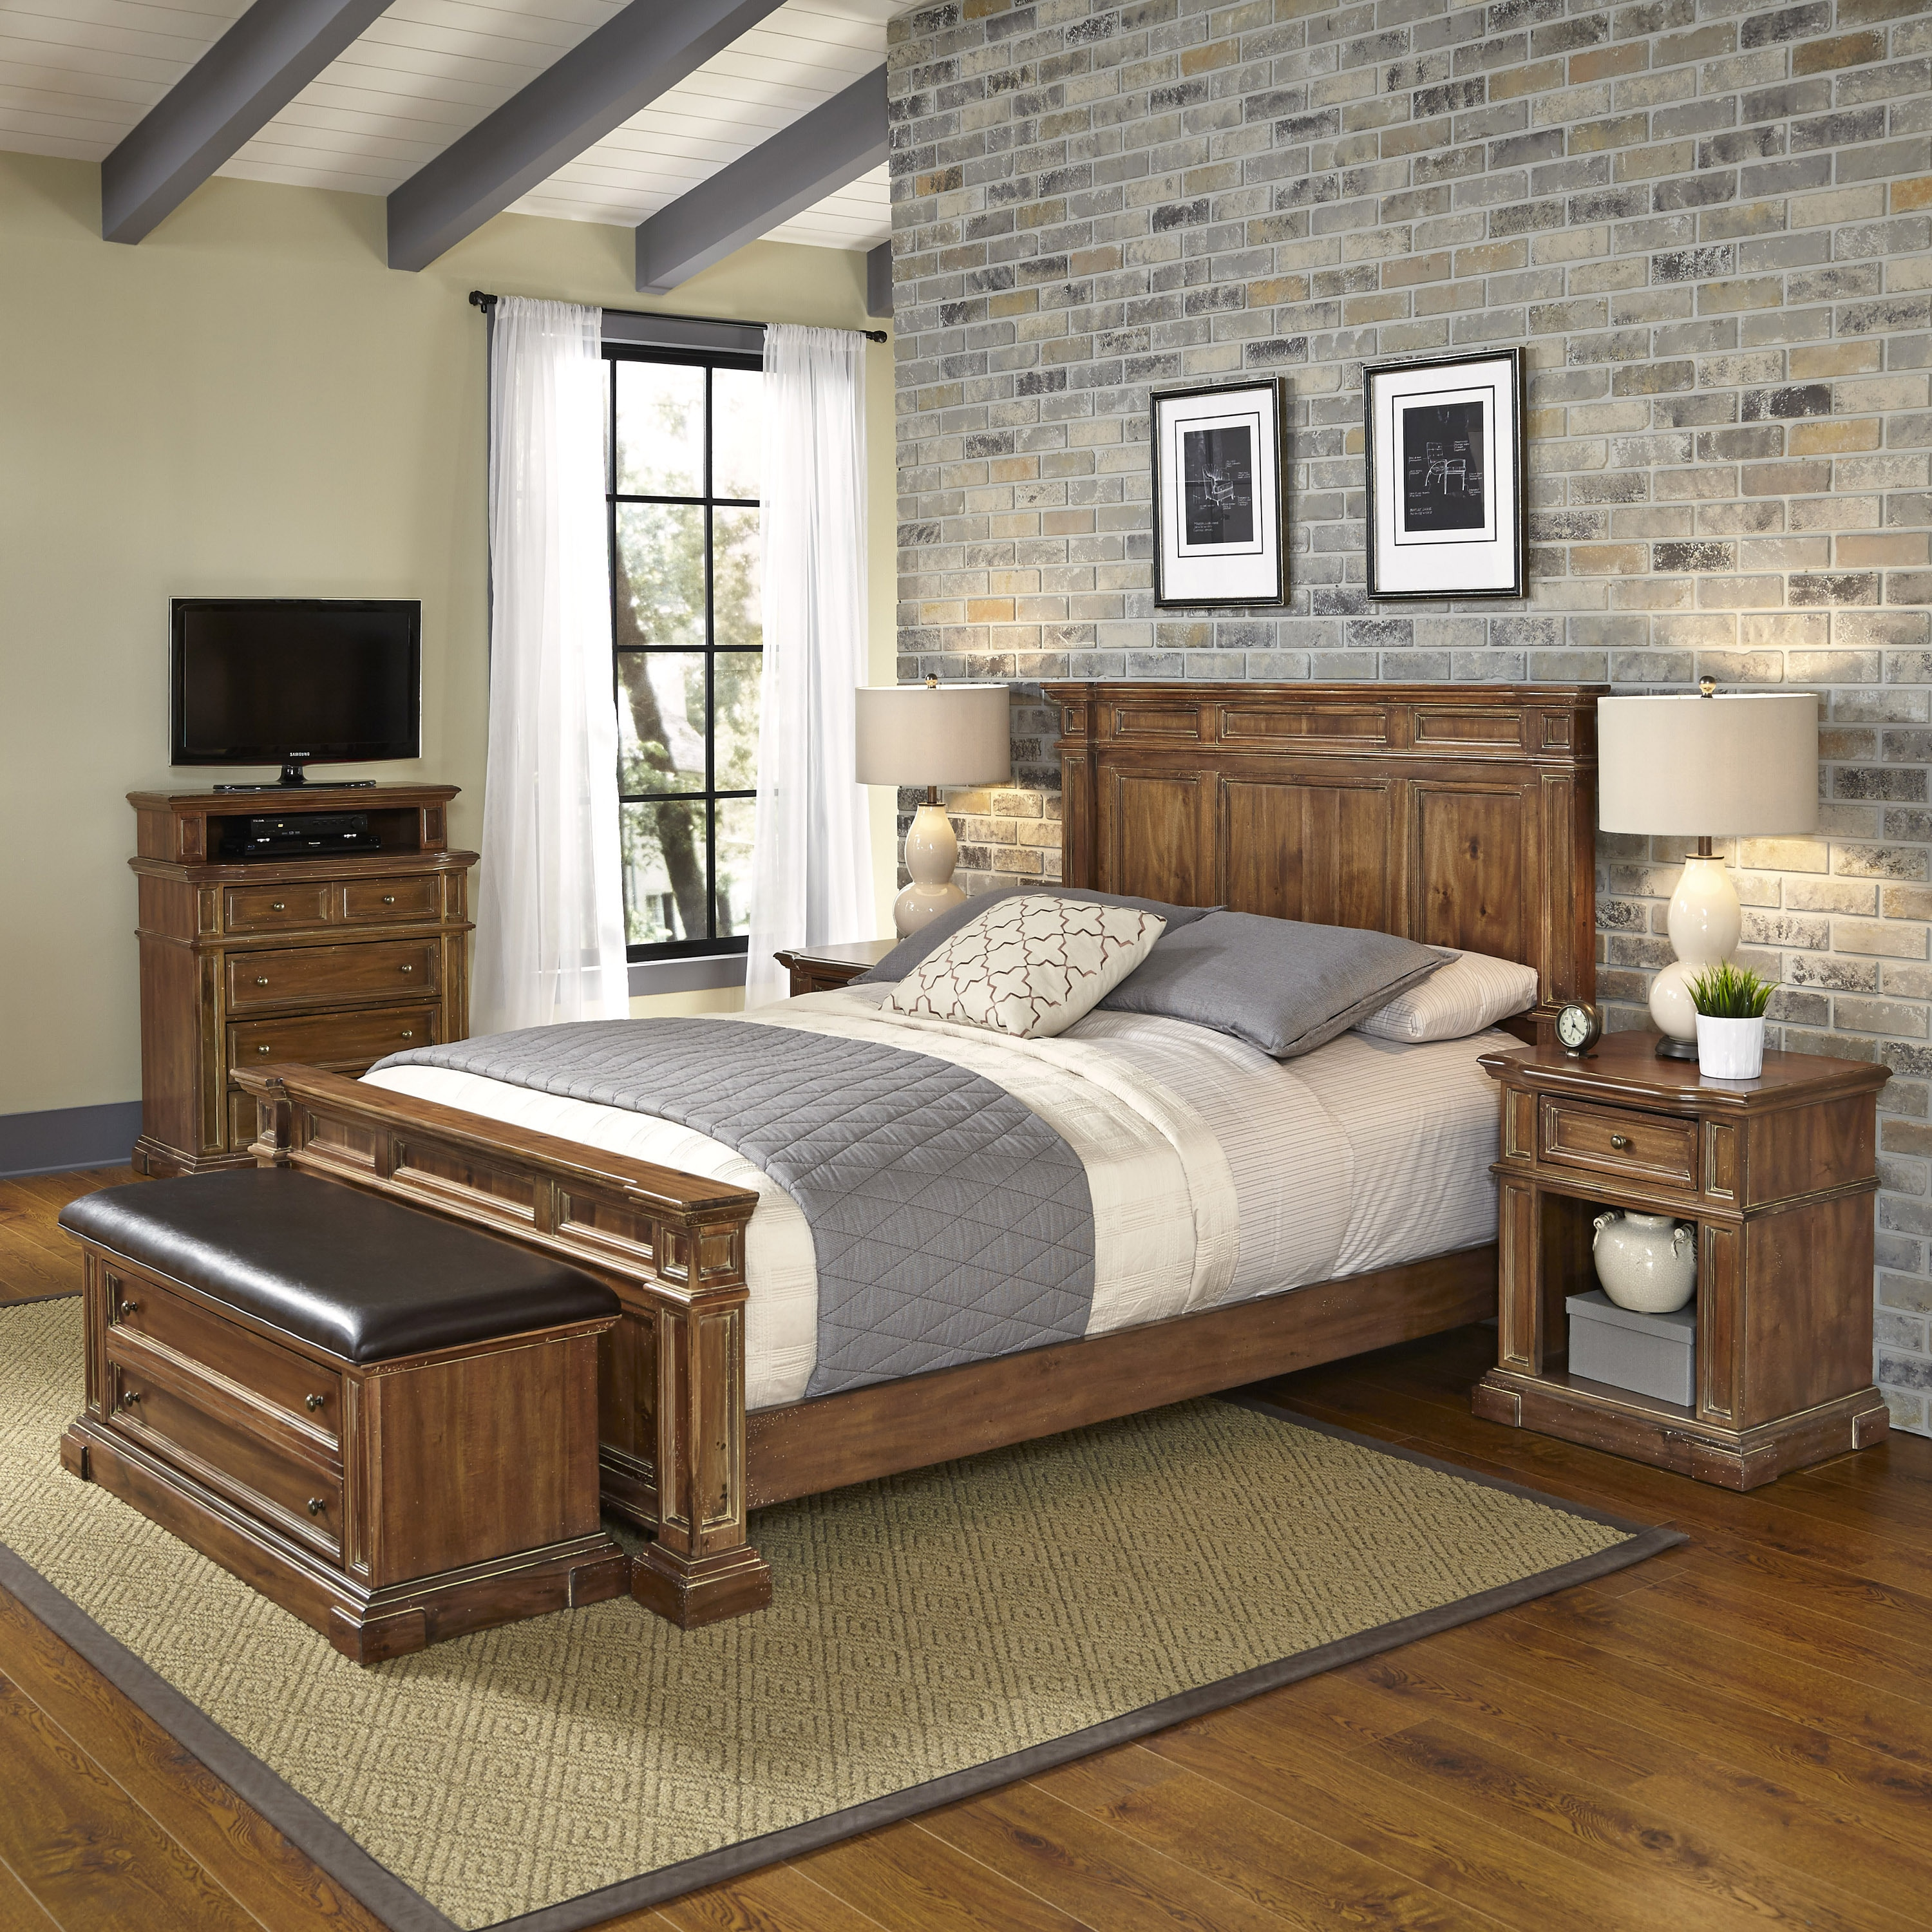 Shop Americana Vintage Bed Two Night Stands Media Chest And